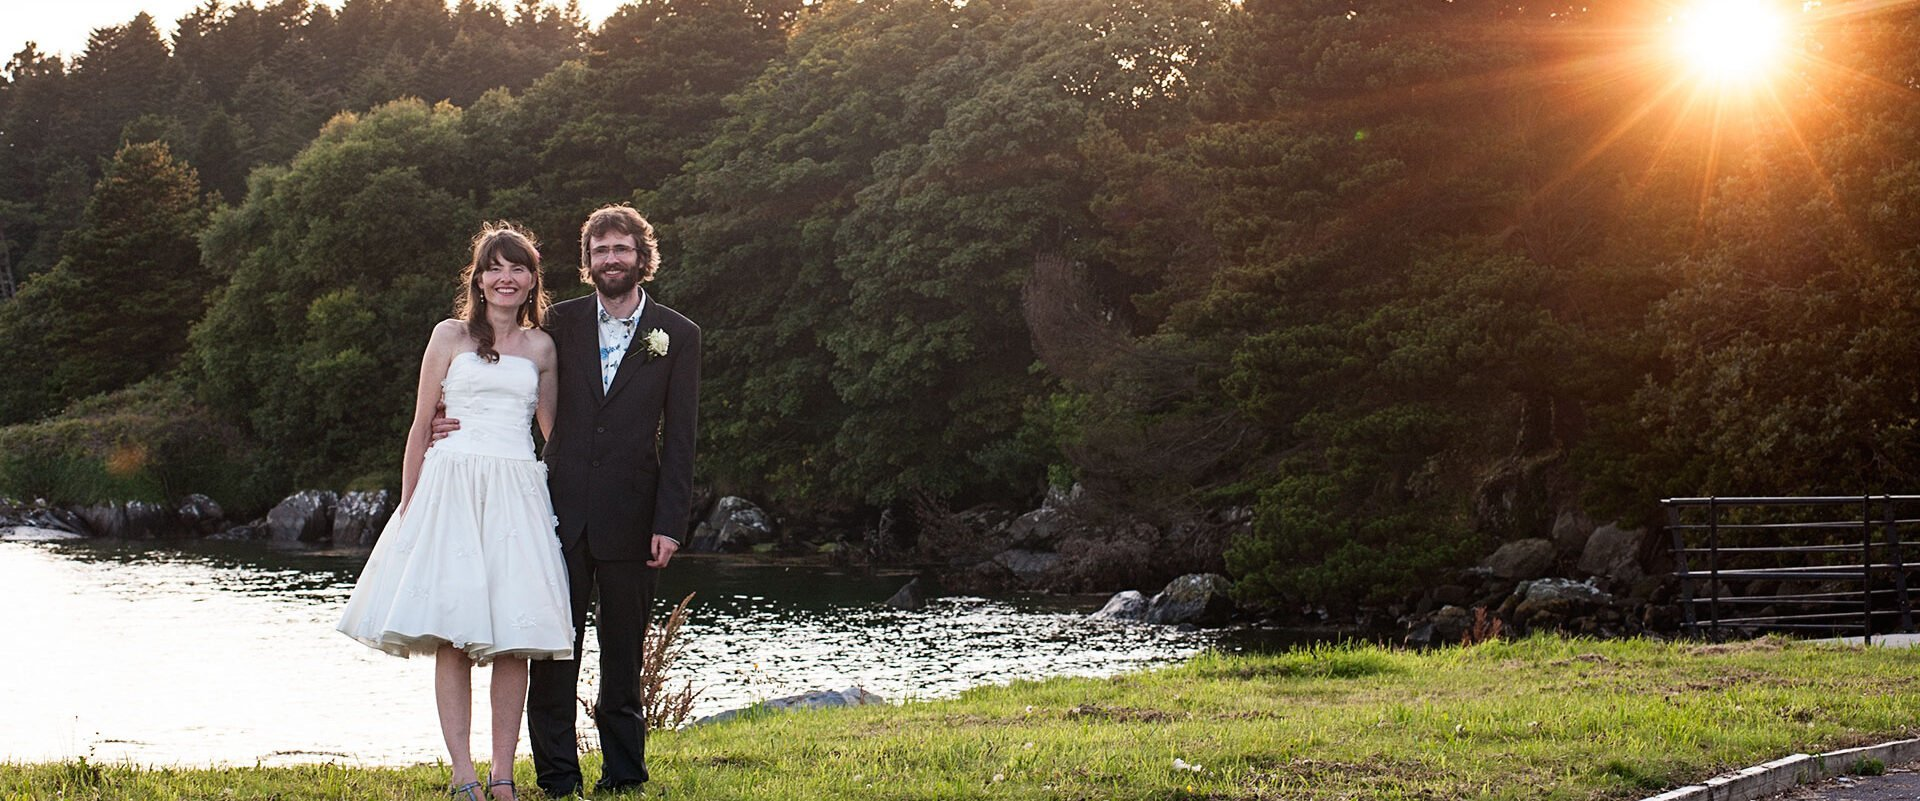 Timeless wedding photography - Evening light over Bantry Bay